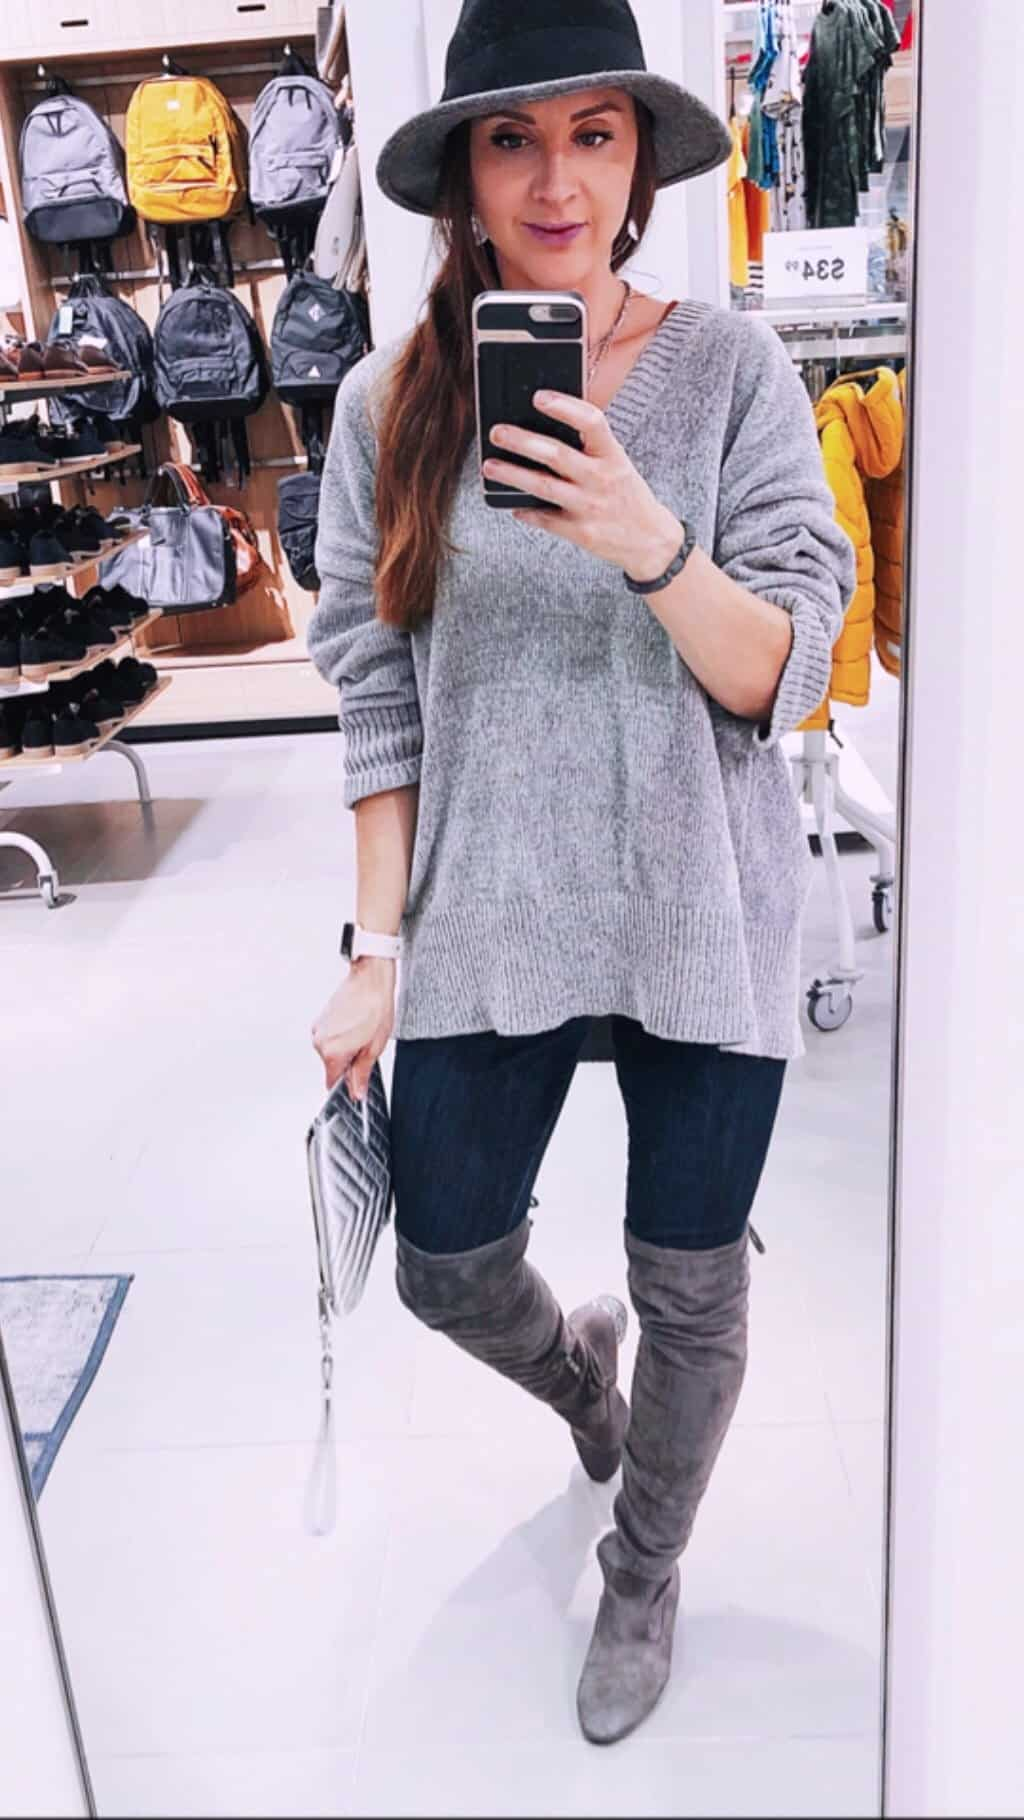 Fall Outfits - How to style over-the-knee boots for fall.